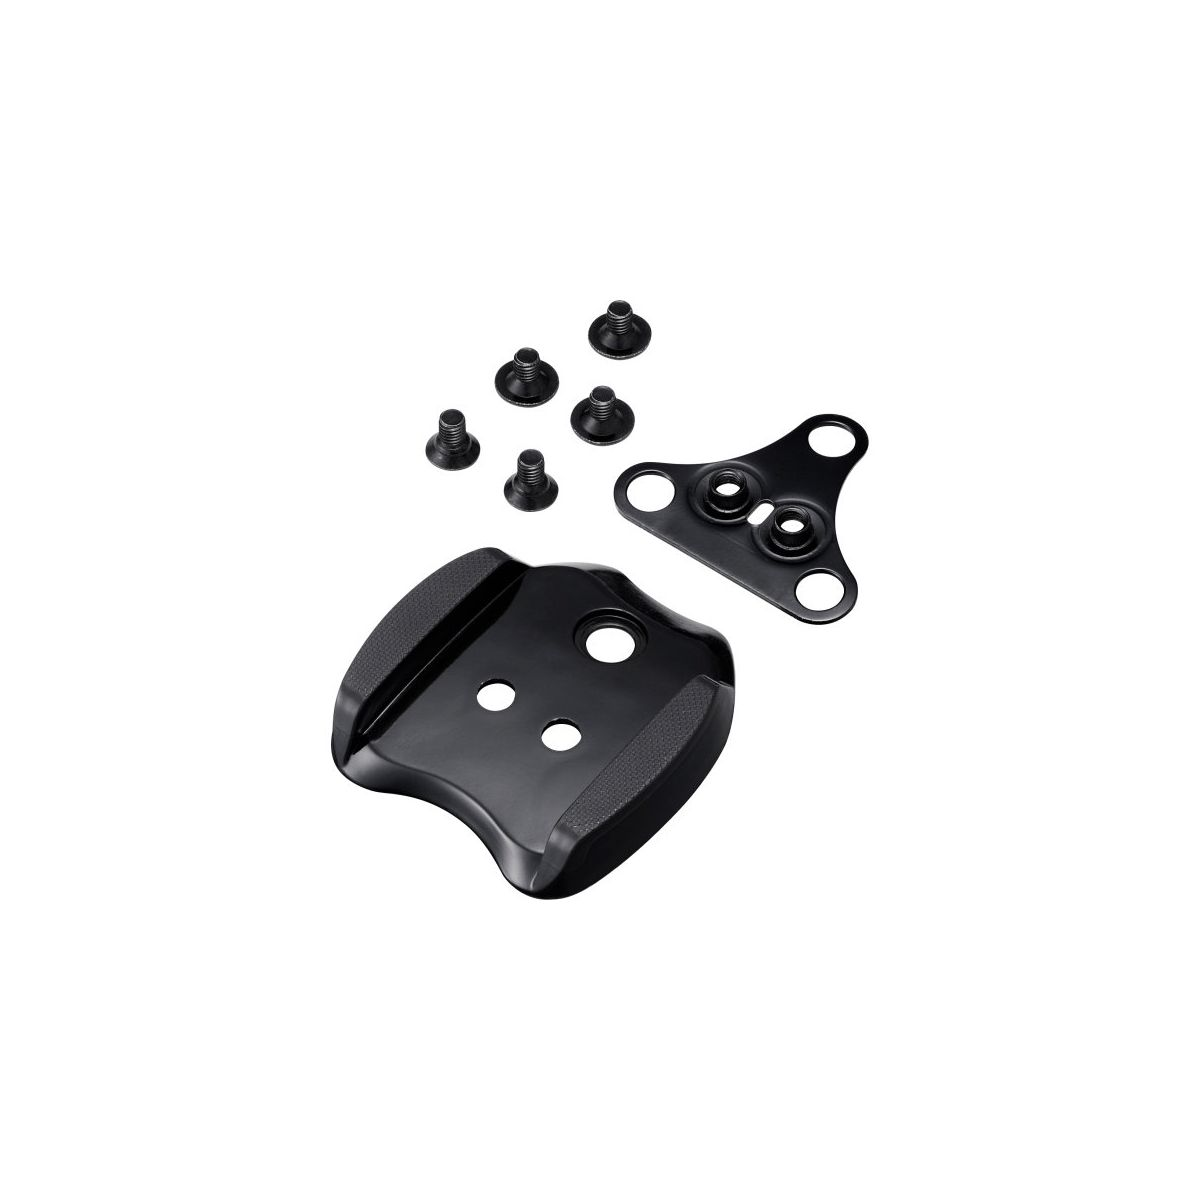 SHIMANO SPD SM-SH41 Cleat Adapter | Pedal cleats